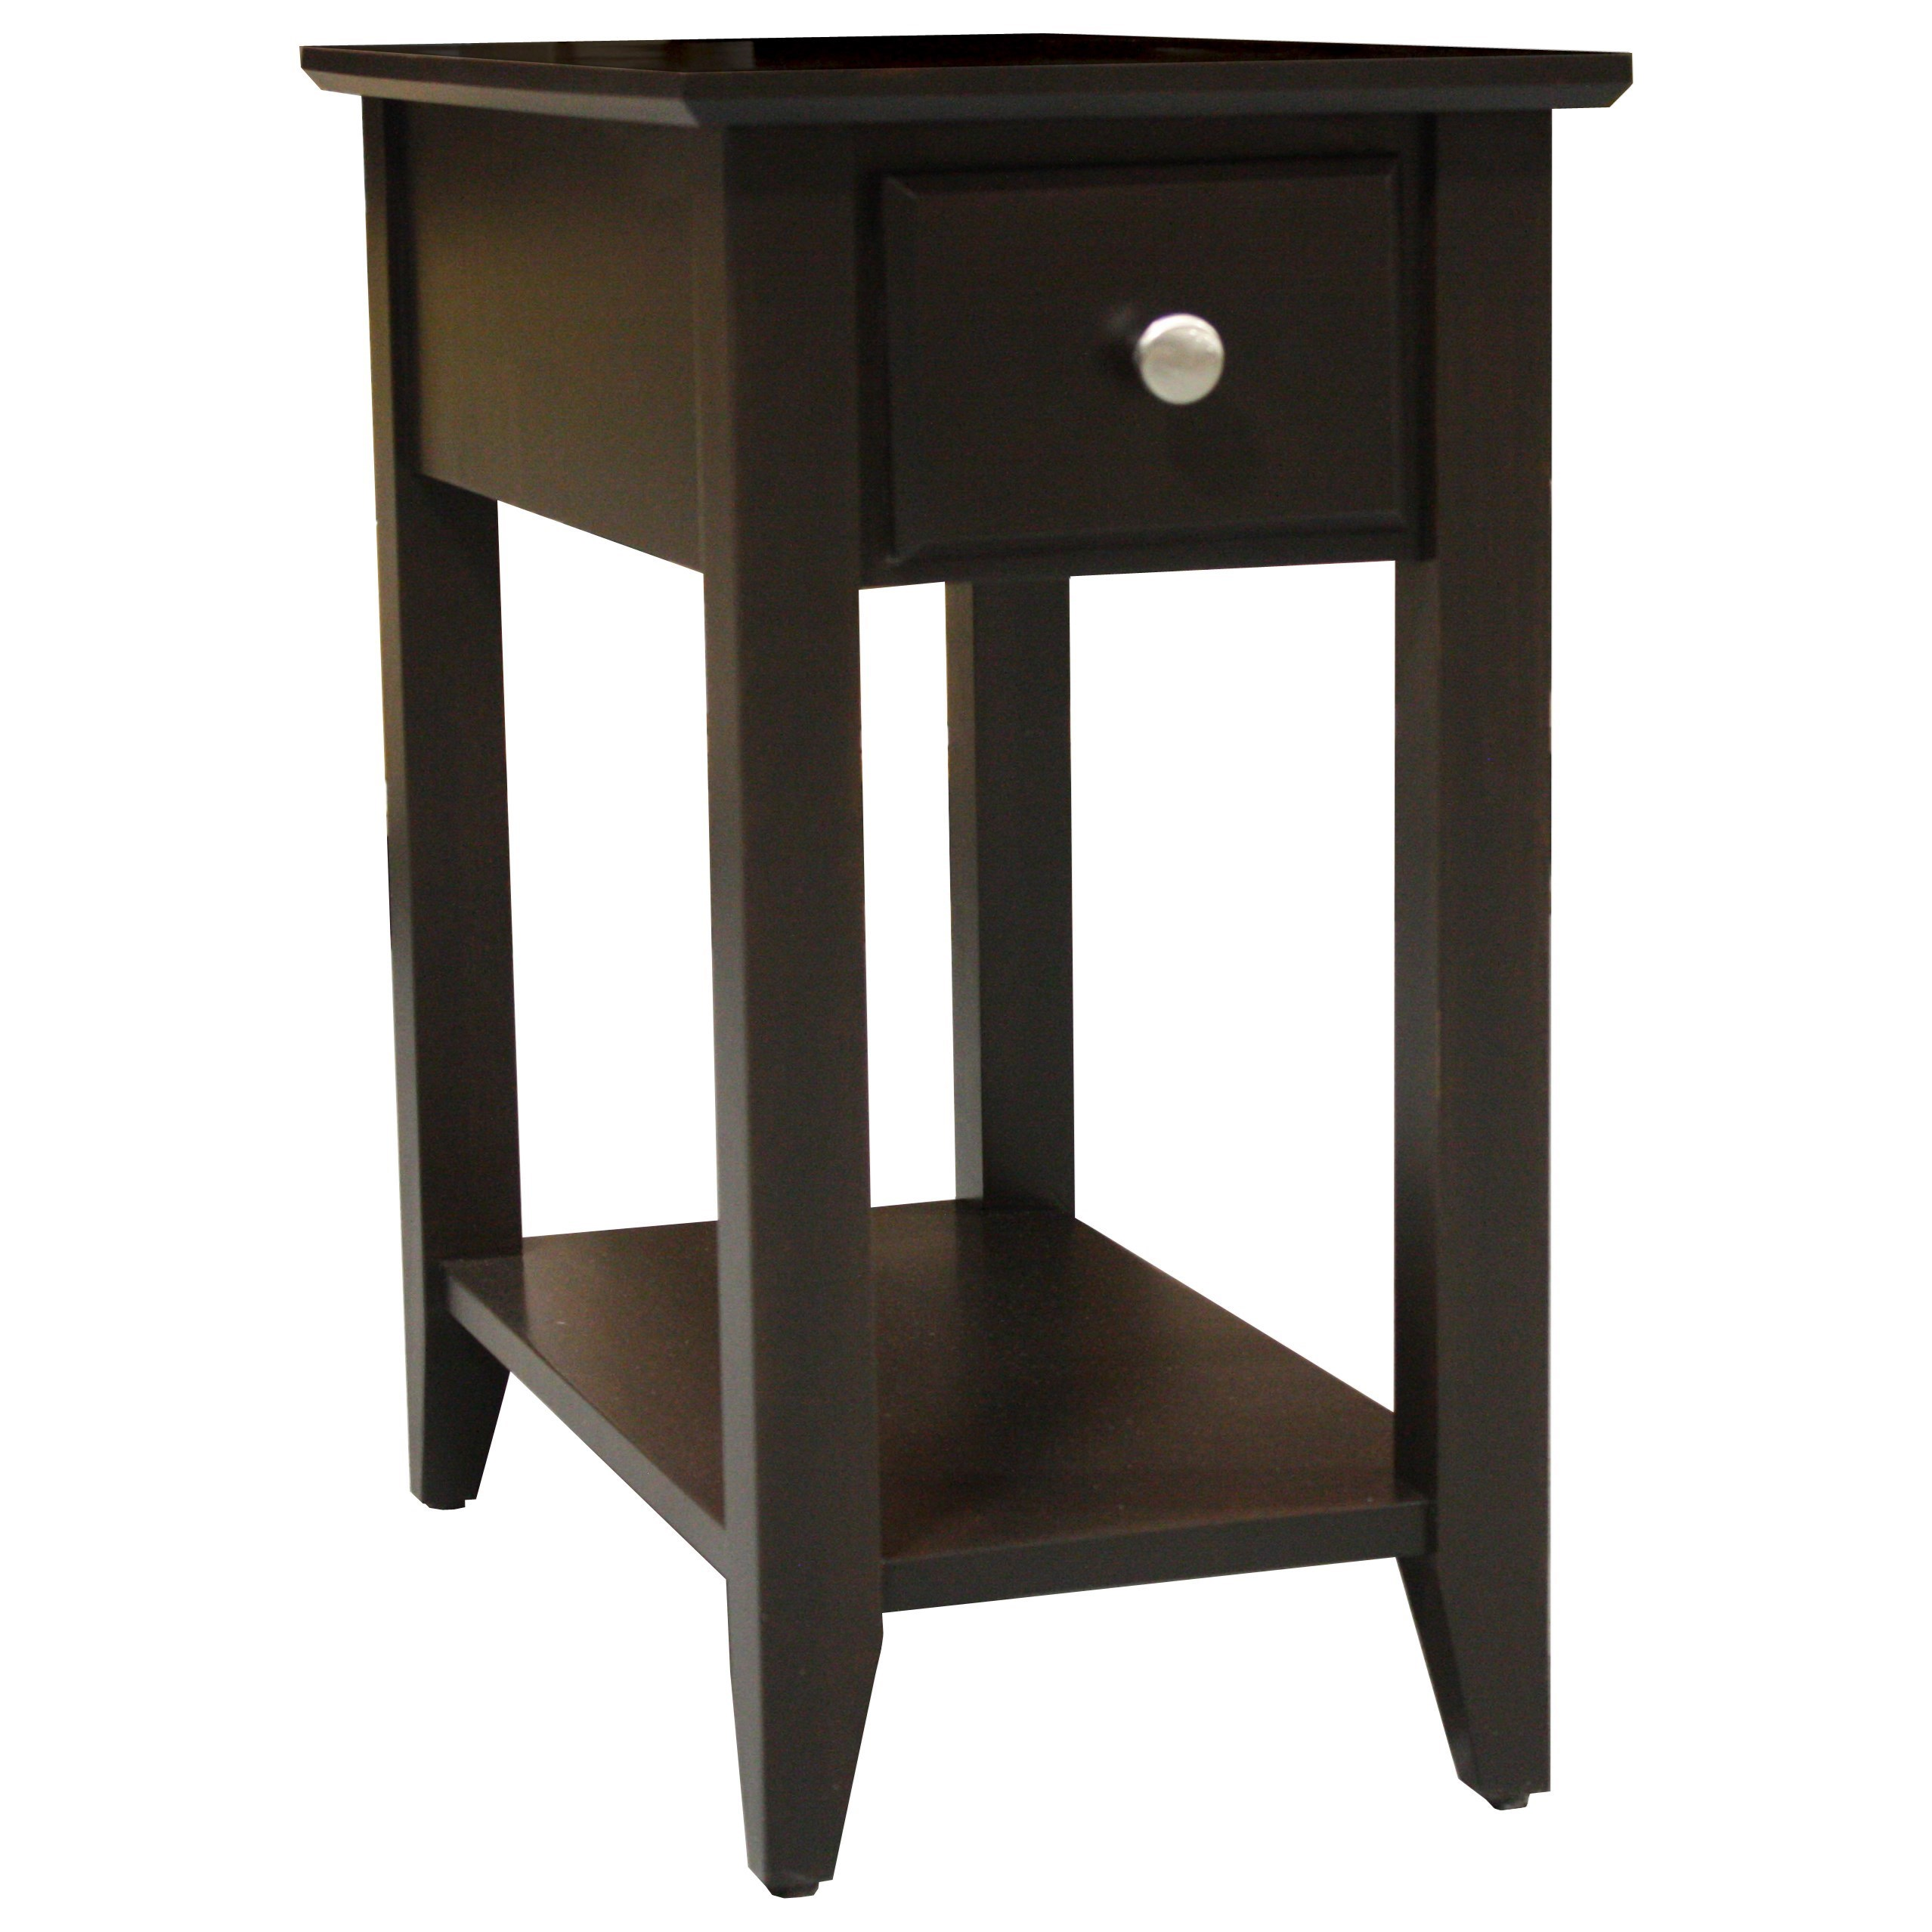 Alder Shaker Tables Chairside Table by Amish Traditions at Sprintz Furniture